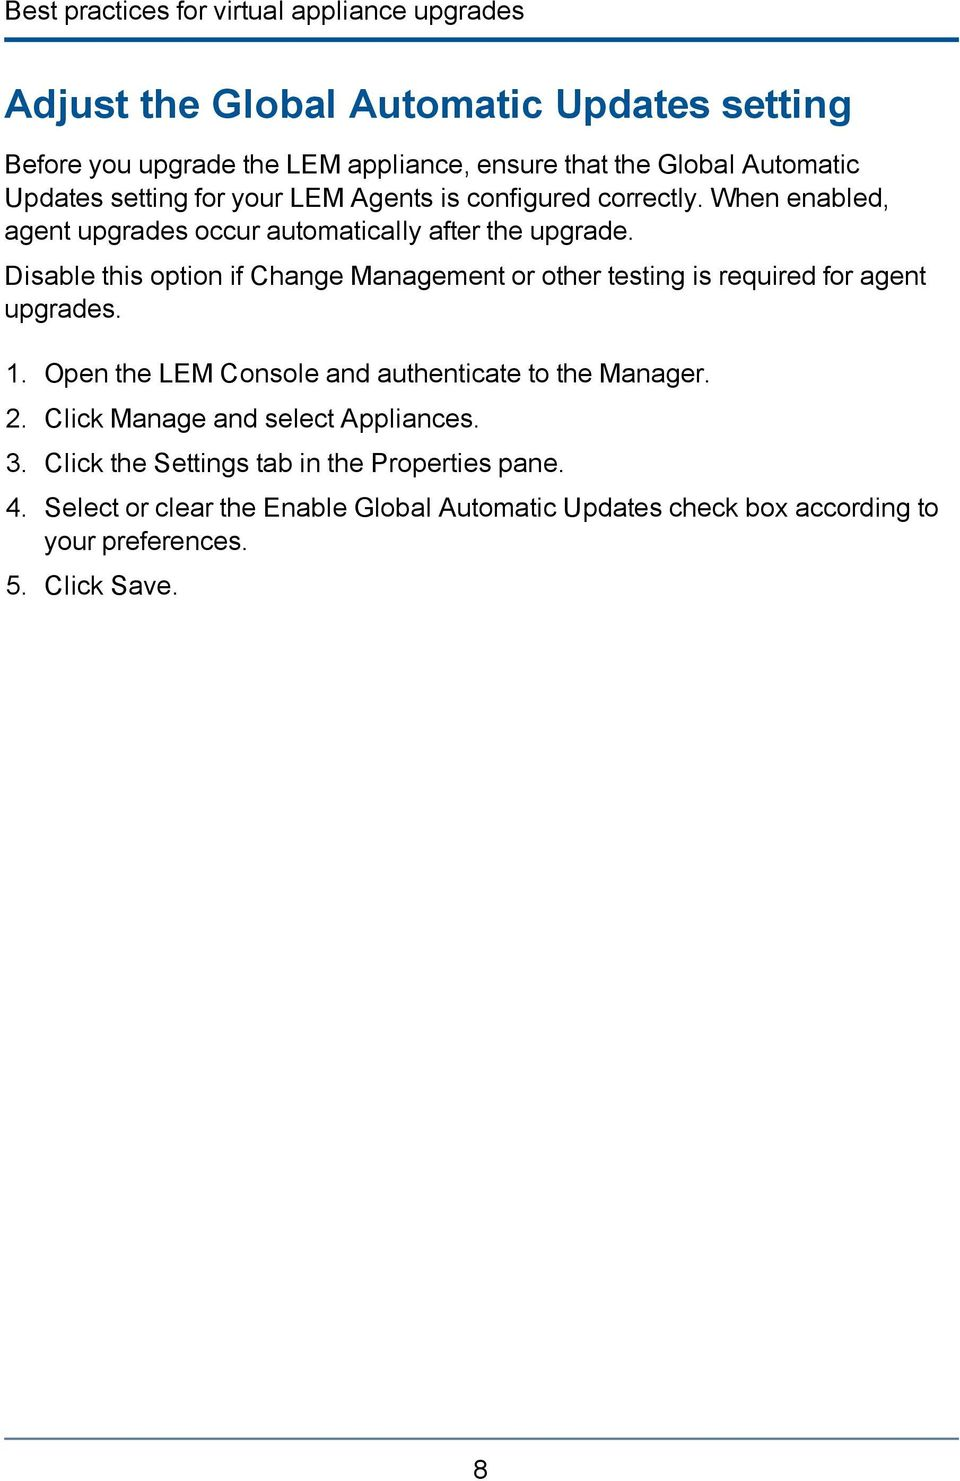 Disable this option if Change Management or other testing is required for agent upgrades. 1. Open the LEM Console and authenticate to the Manager. 2.